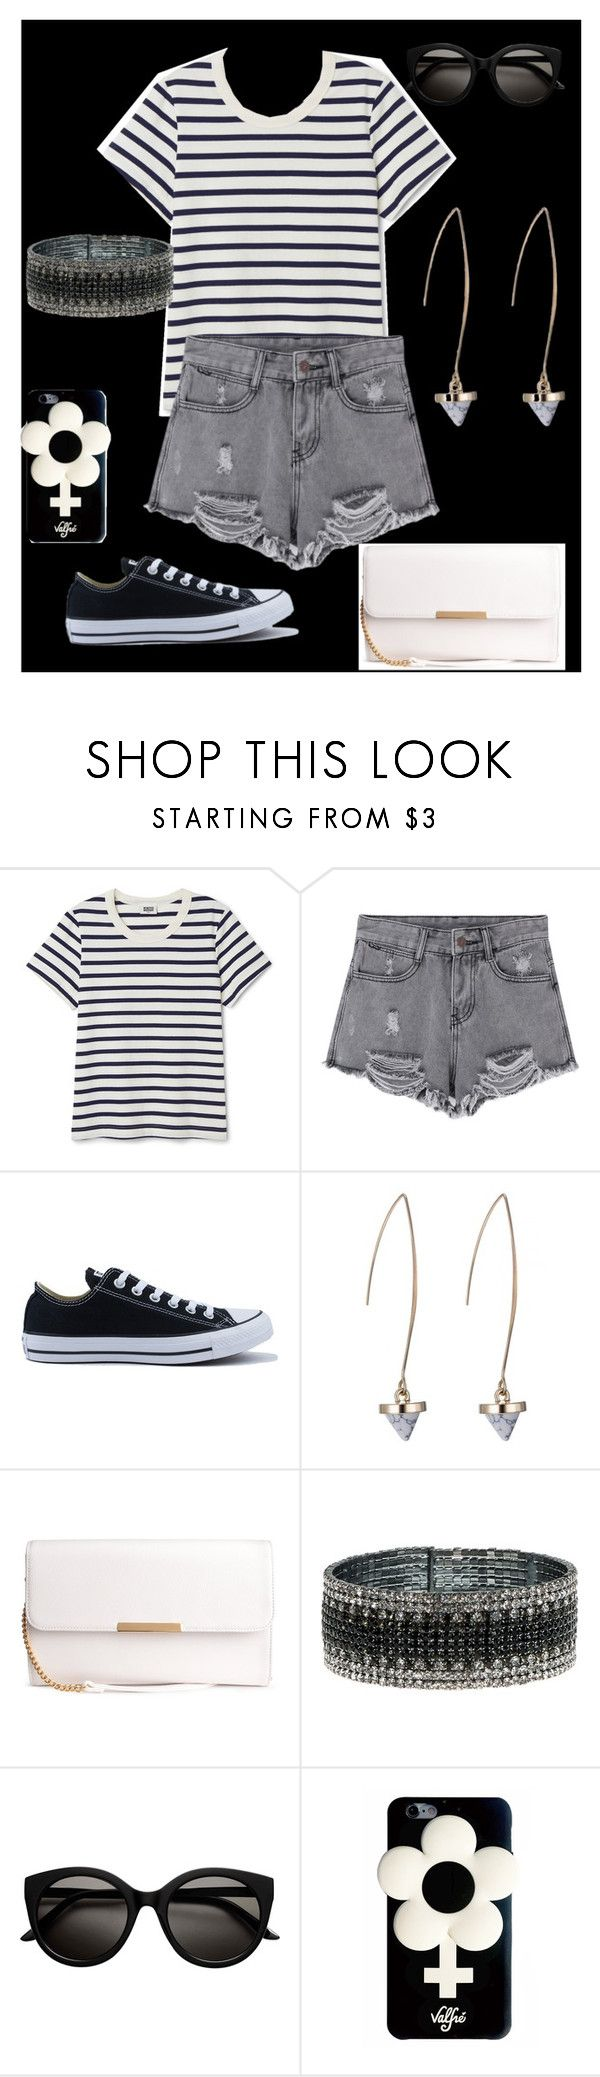 """""""Untitled #867"""" by ununiformedstyles ❤ liked on Polyvore featuring Converse, Anne Klein and Valfré"""